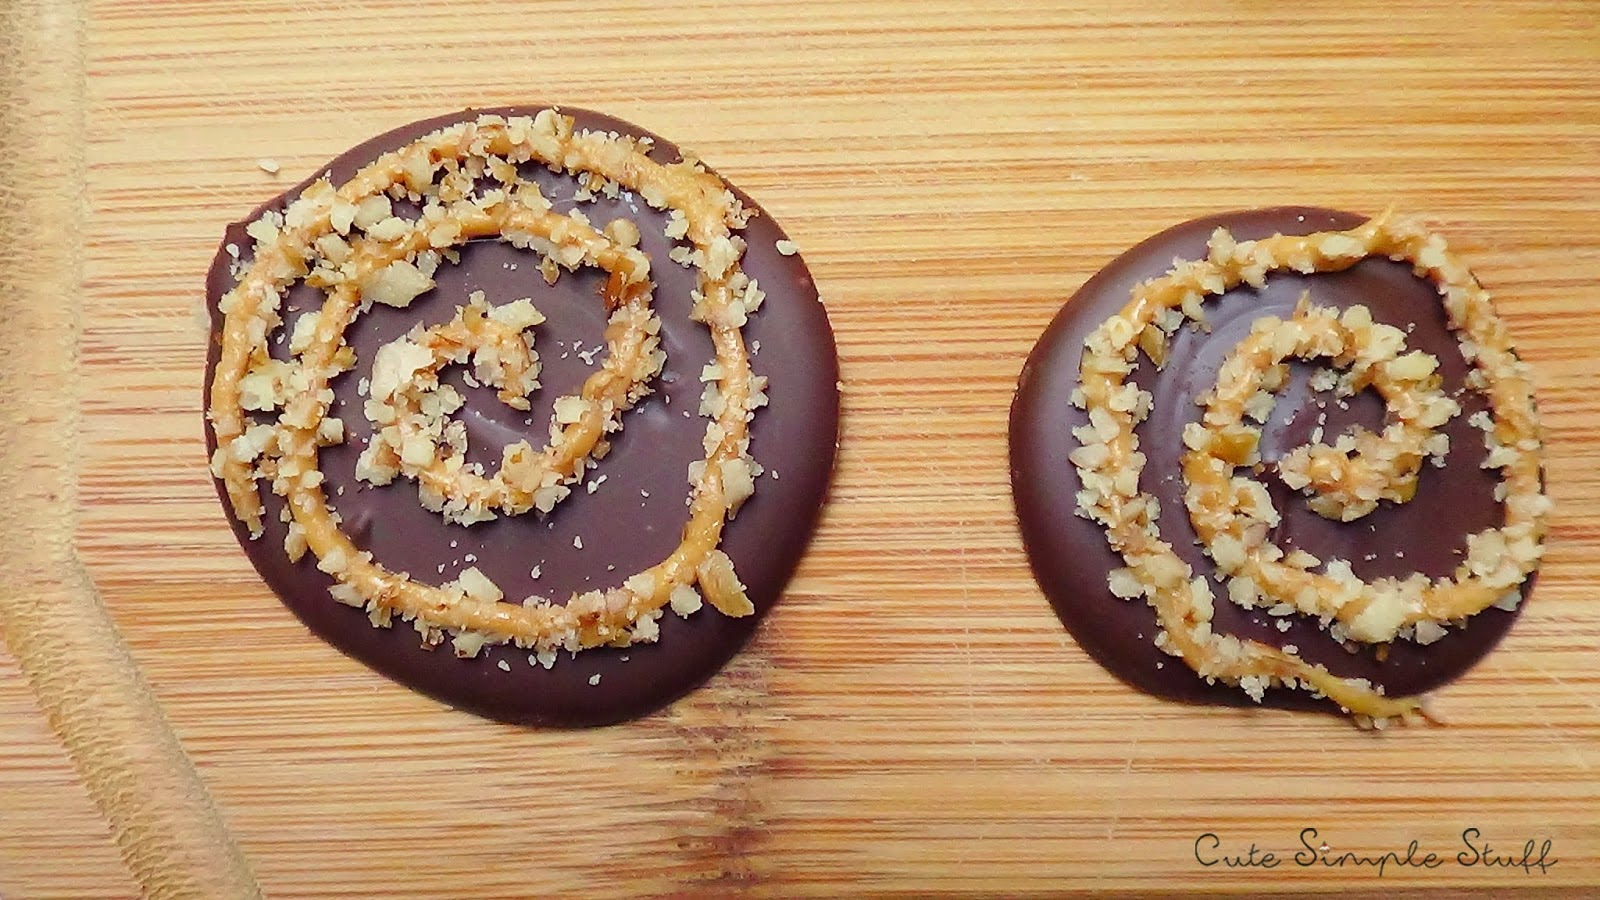 http://www.cutesimplestuff.com/2015/03/peanut-butter-and-chocolate-swirl.html